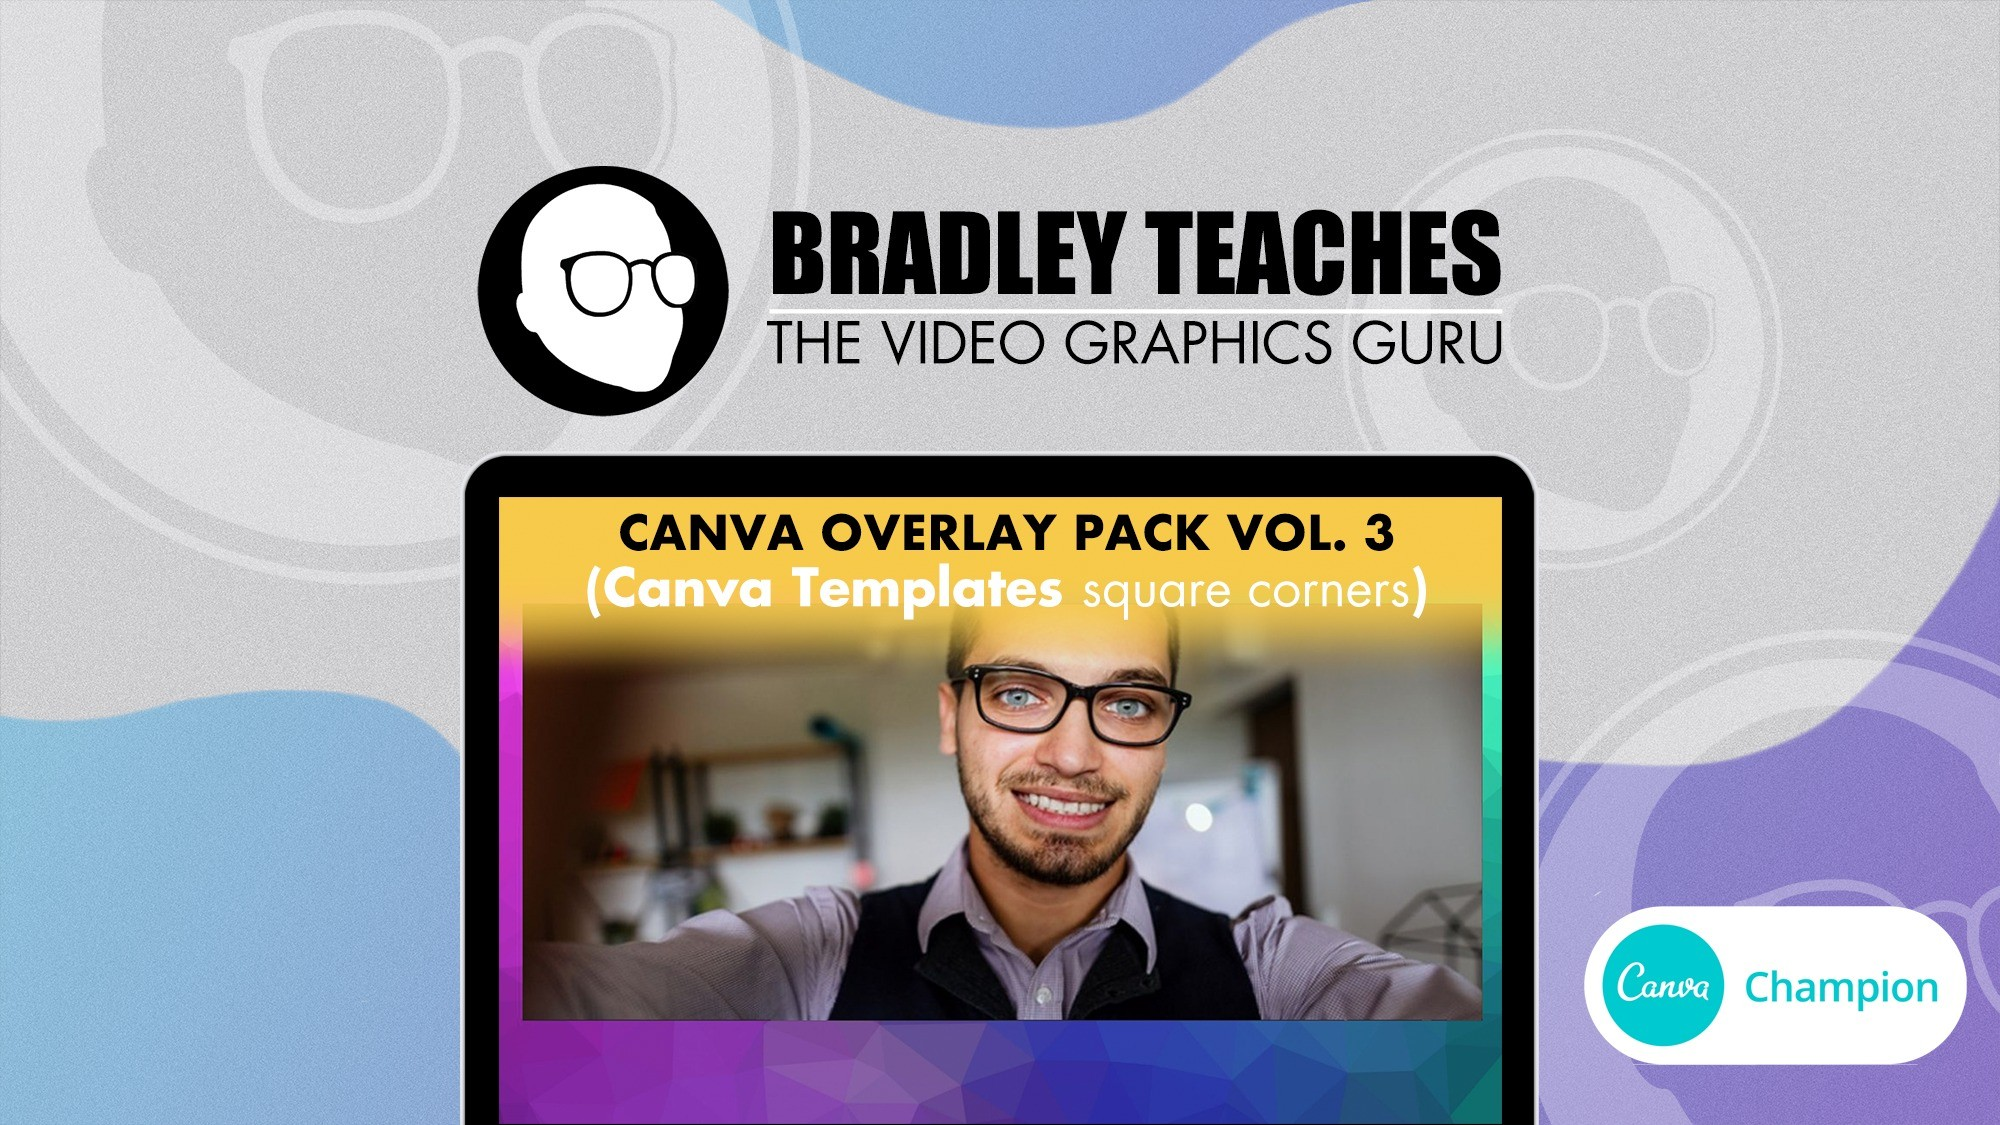 AppSumo Deal for Overlay Pack - Canva Templates Vol. 3